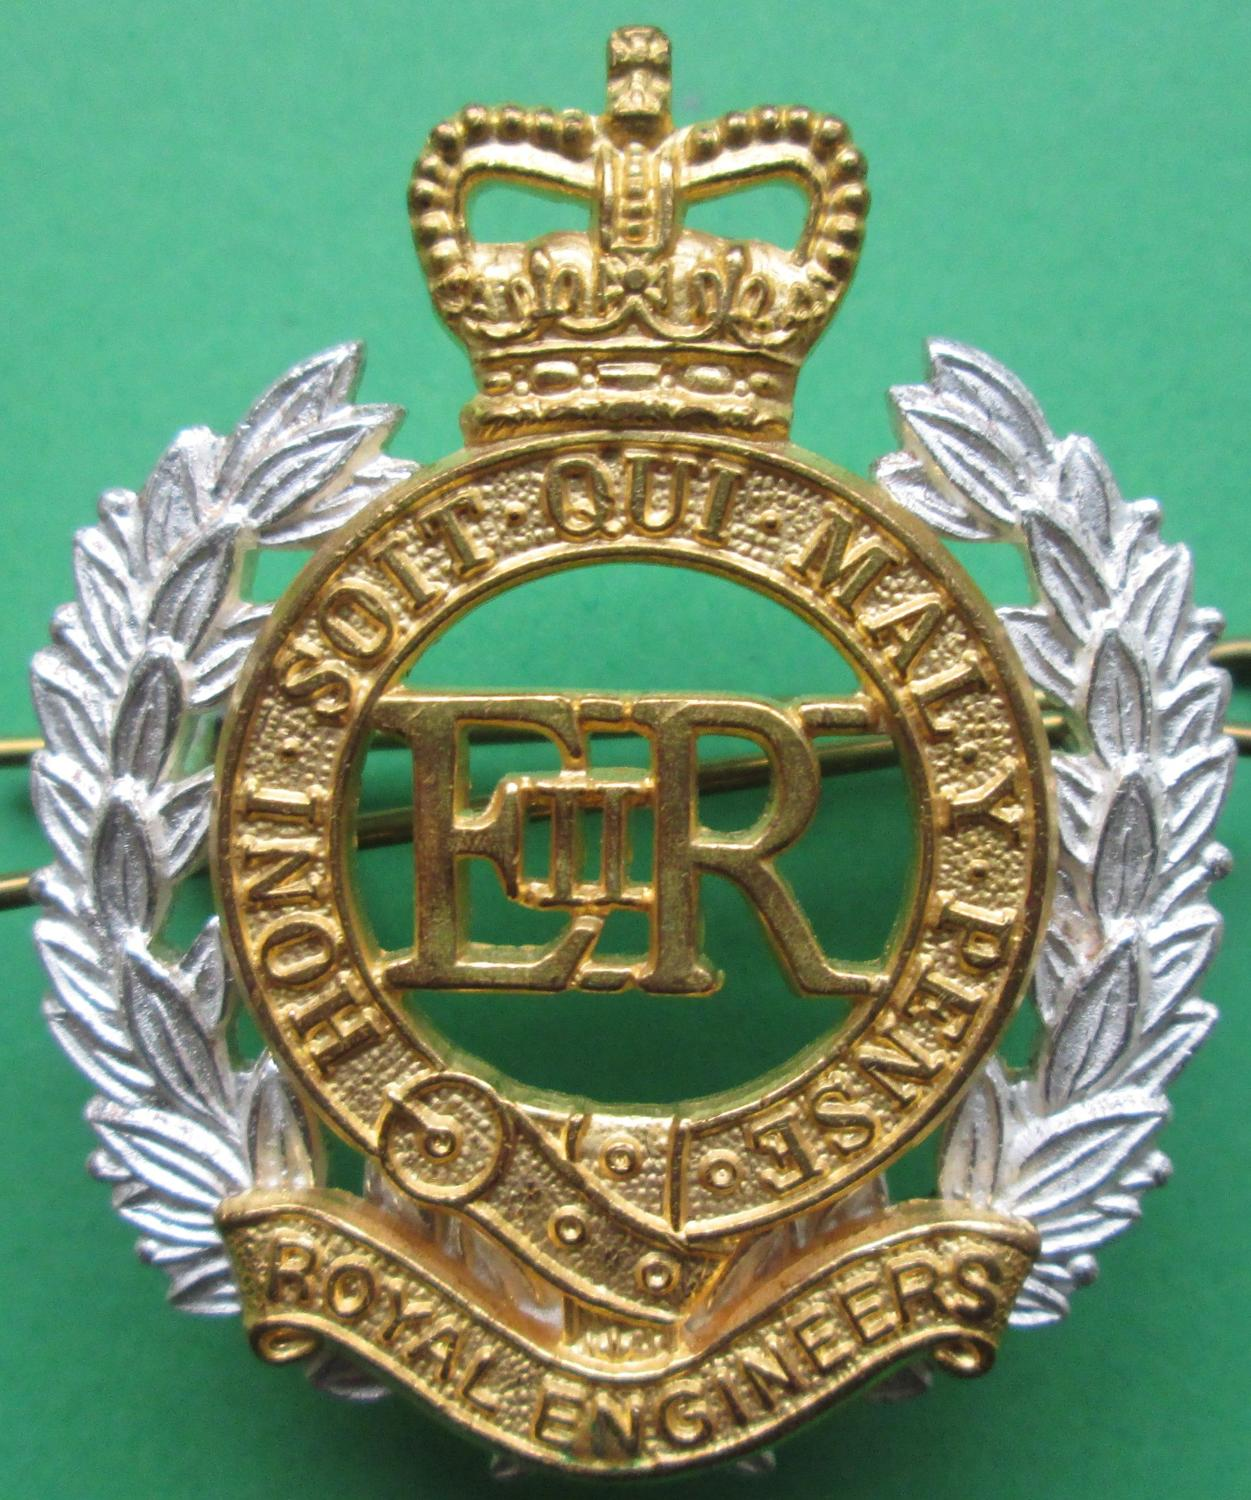 A ROYAL ENGINEERS GILT CAP BADGE